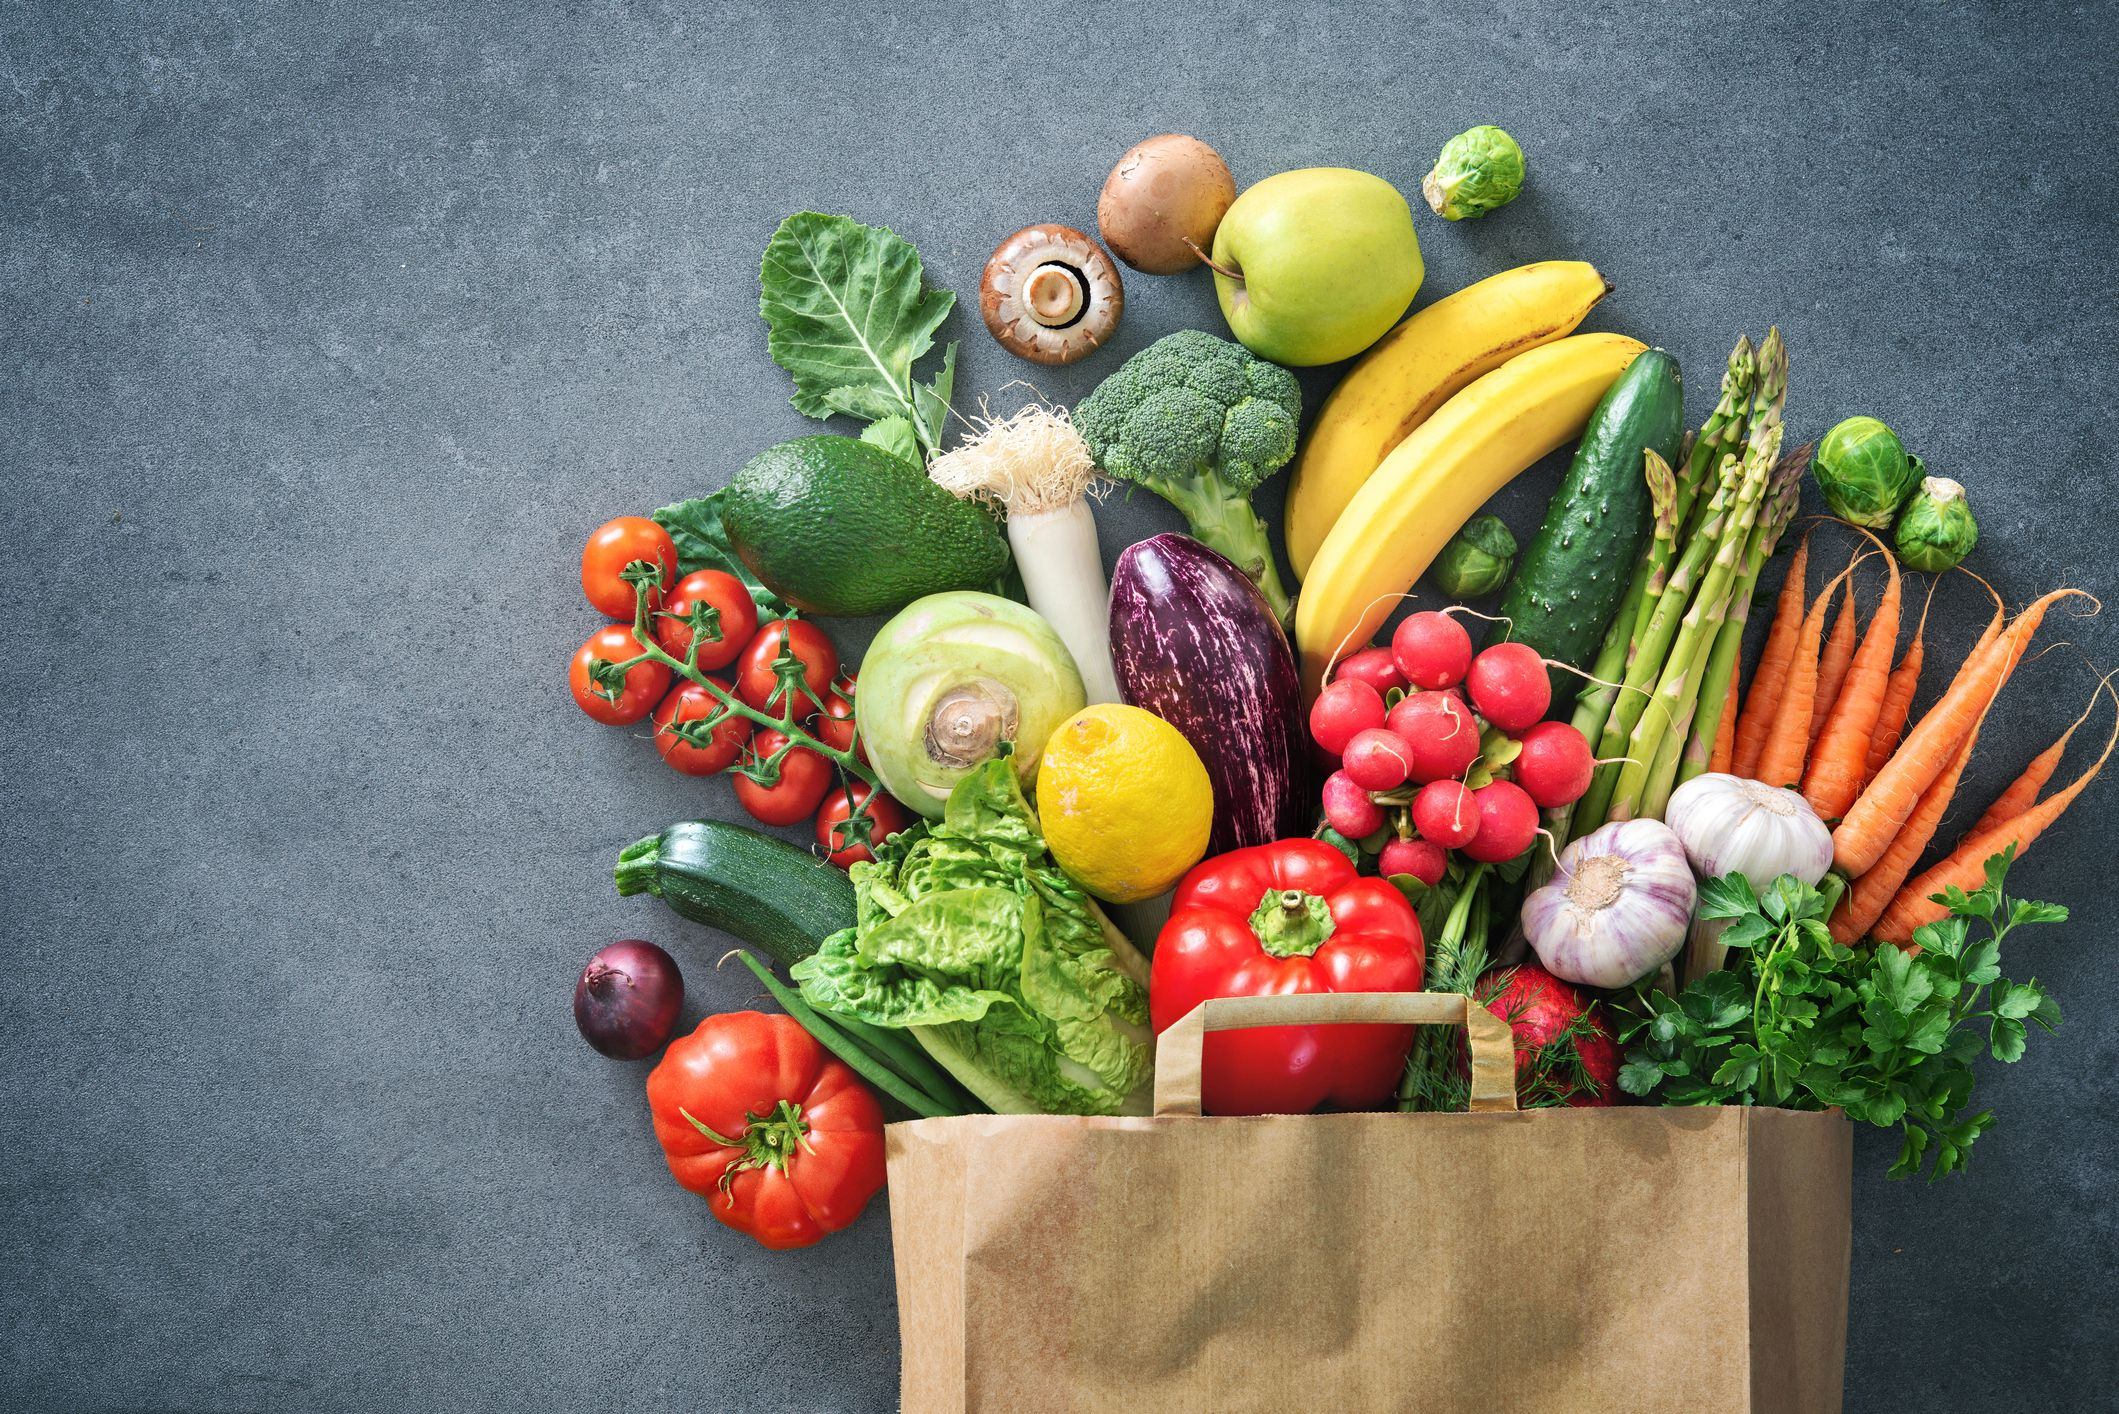 FRESH SALONE TO START EXPORTING VEGETABLES TO THE EU MARKET